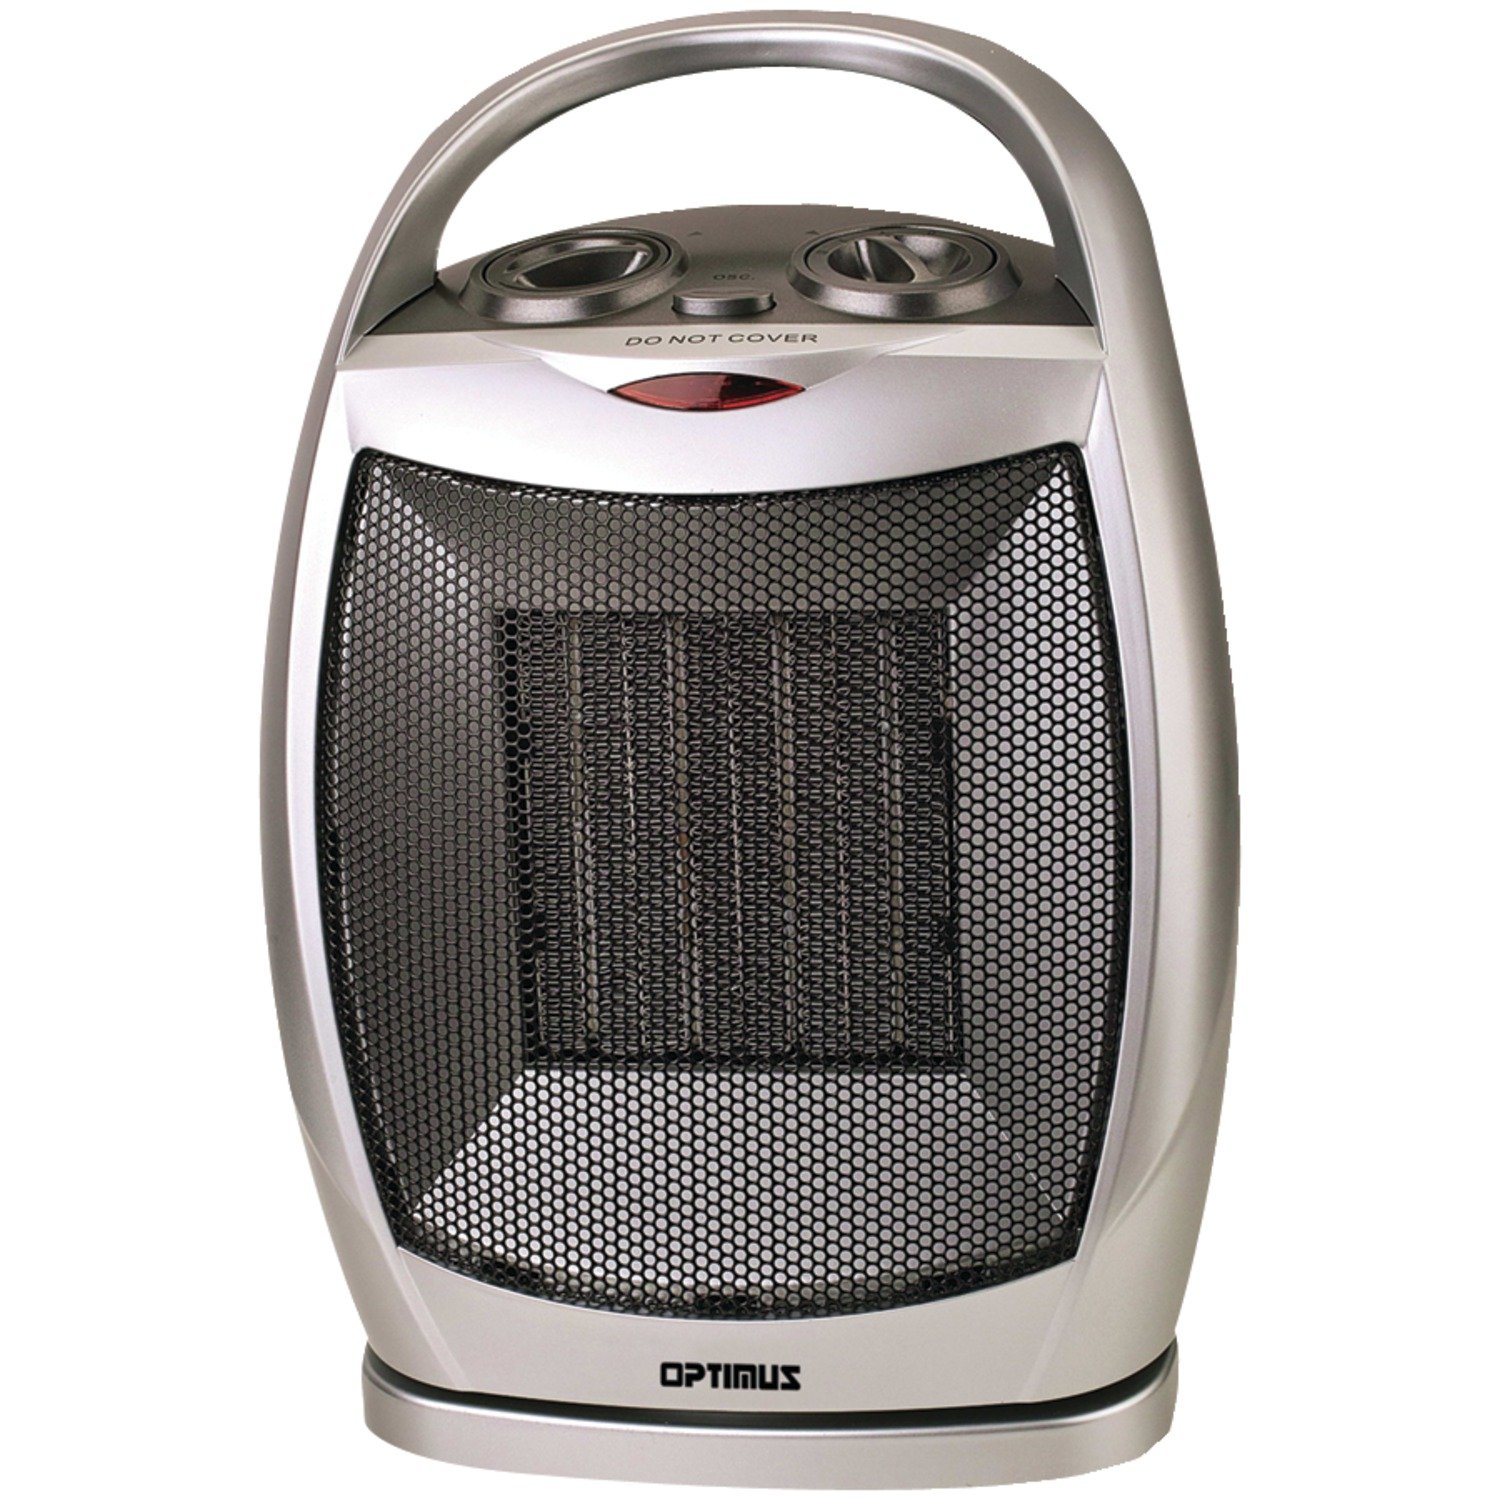 Portable Battery Heater Amazoncom Lasko 5409 Oscillating Ceramic Tabletop Floor Heater